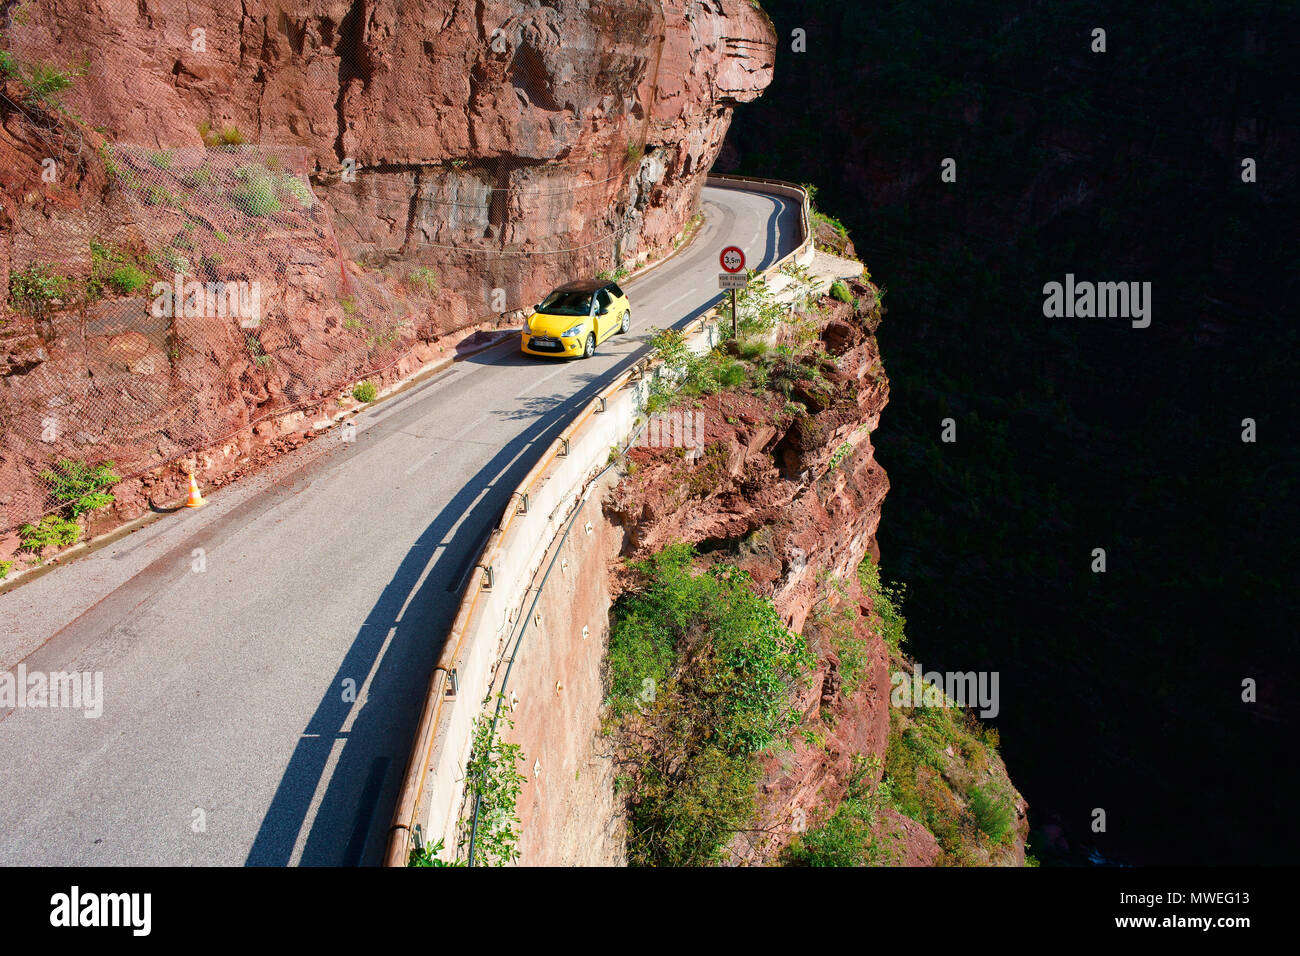 SPORTS CAR ON A NARROW ROAD INSIDE A DEEP CANYON (aerial view from a 6-meter mast). Gorges du Cians, French Riviera's hinterland, France. - Stock Image